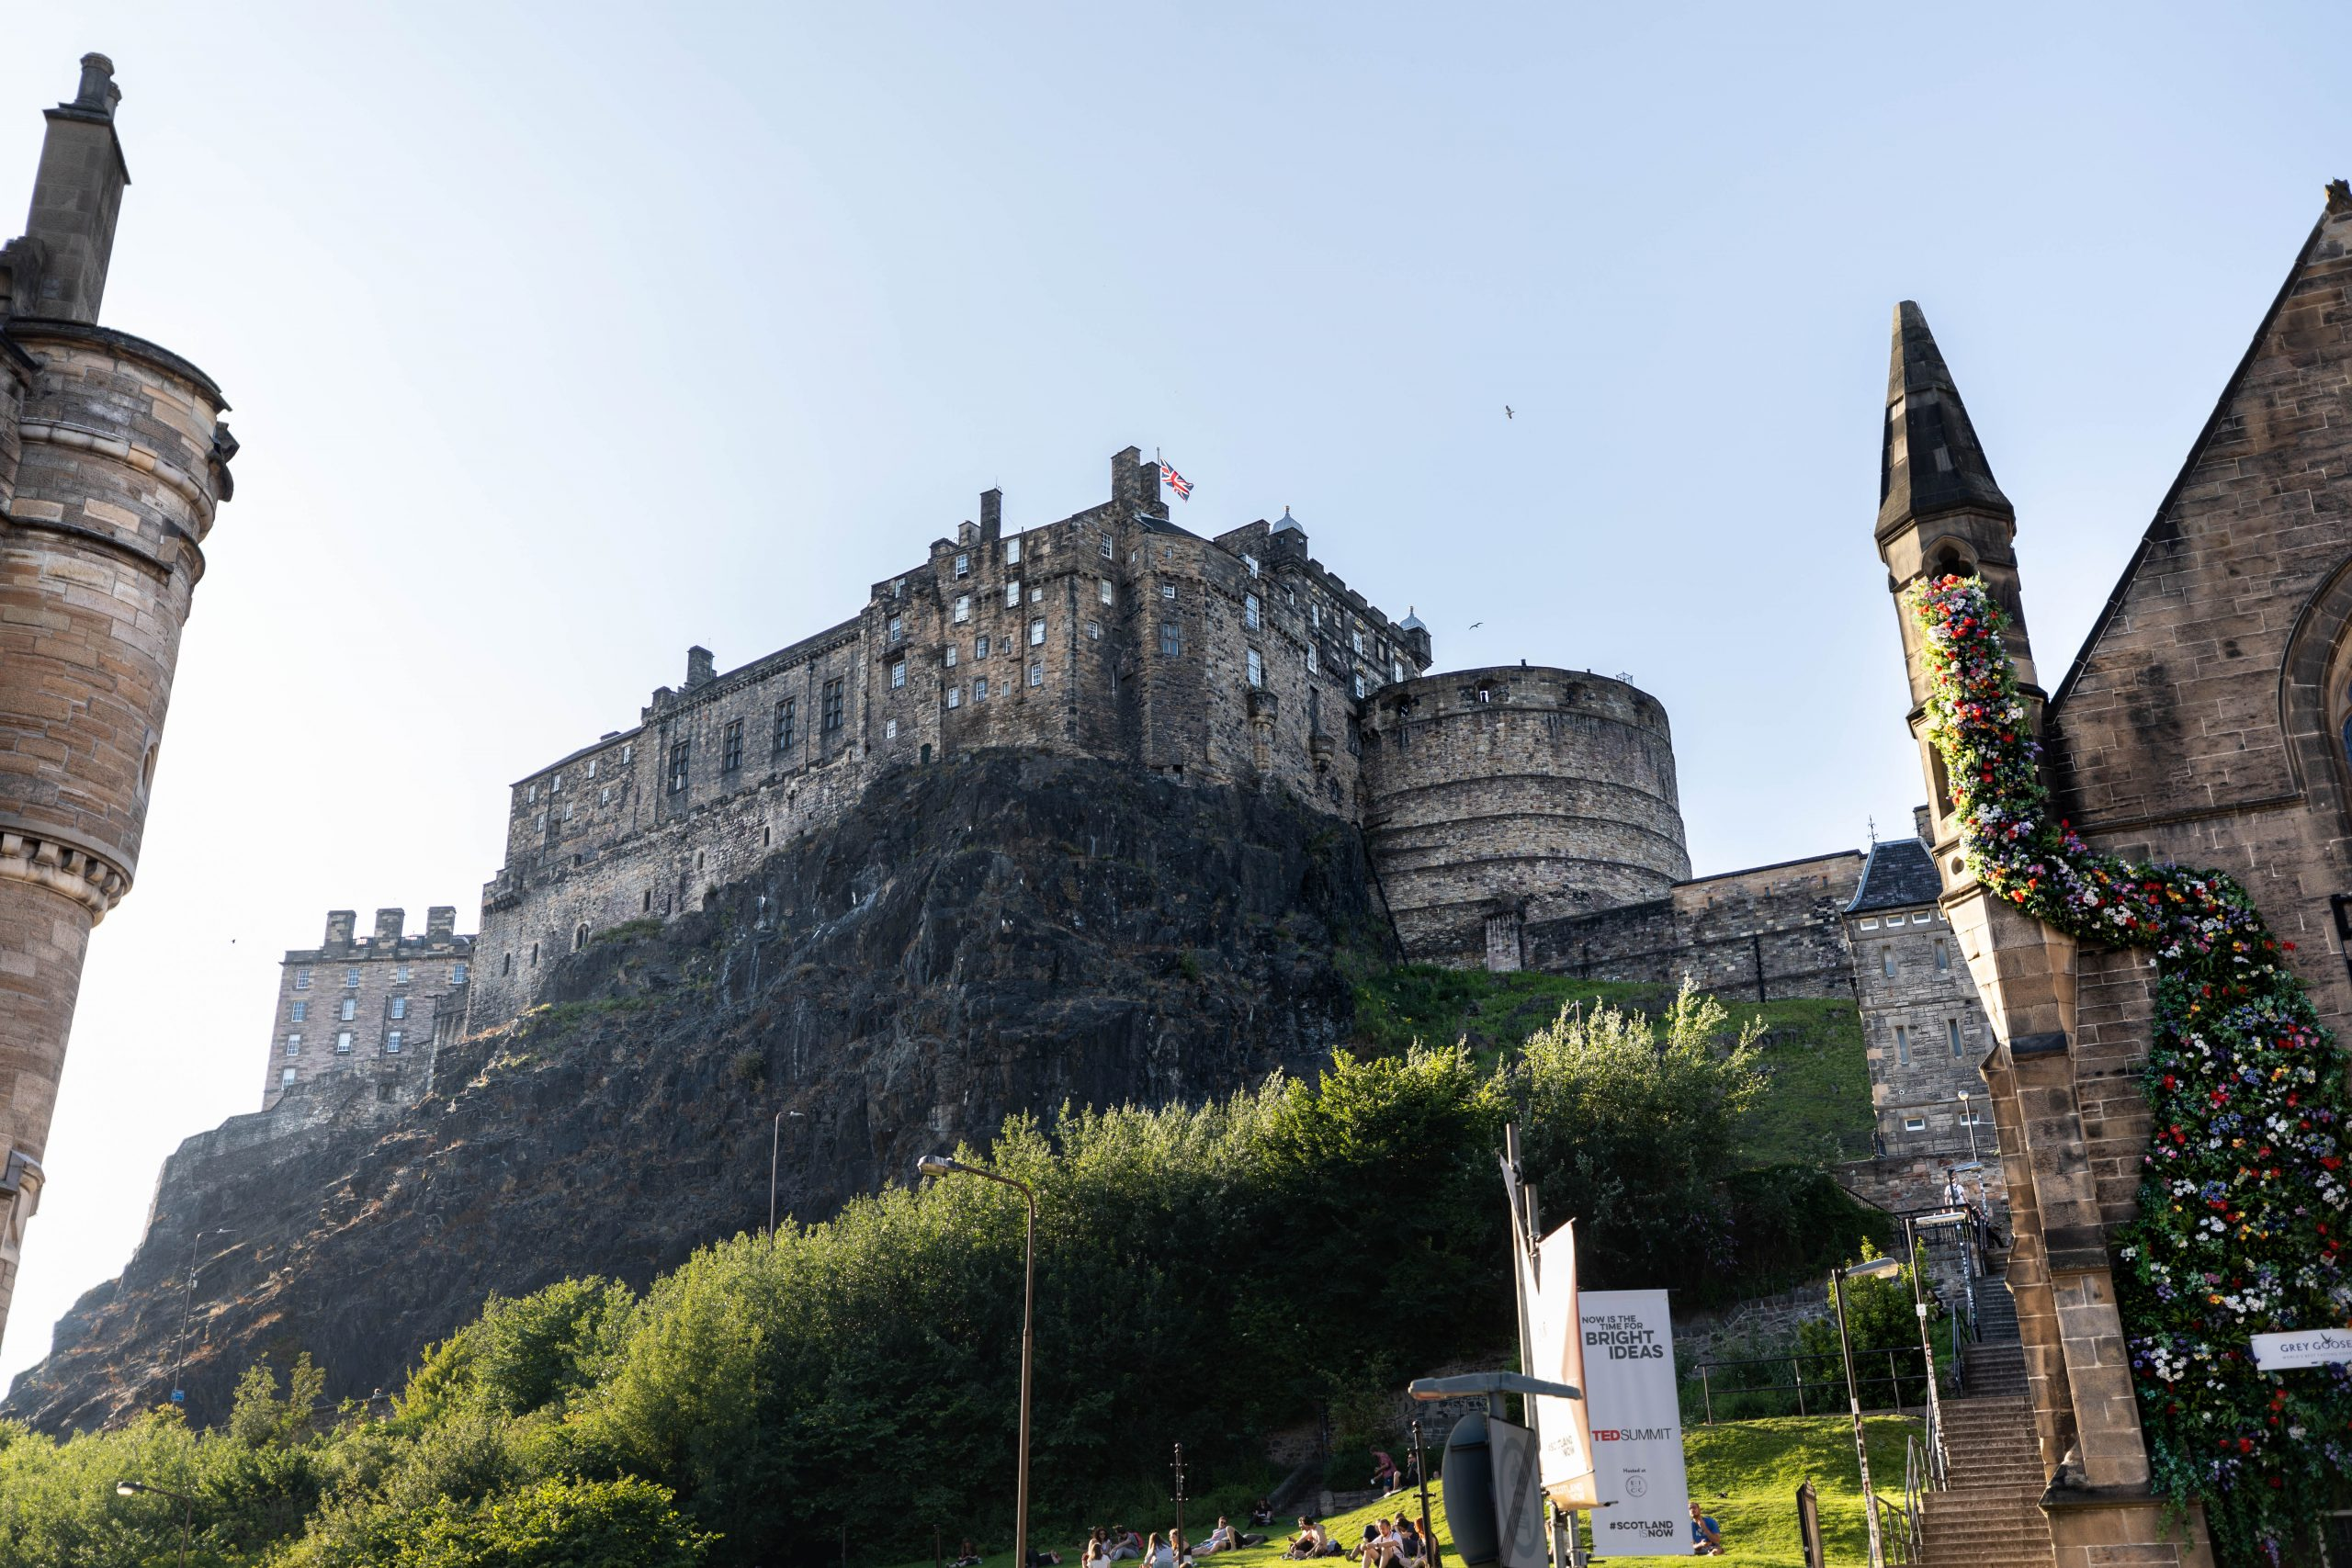 Edinburgh Castle on the Hill Luxury Travel Guide Scotland by Annie Fairfax